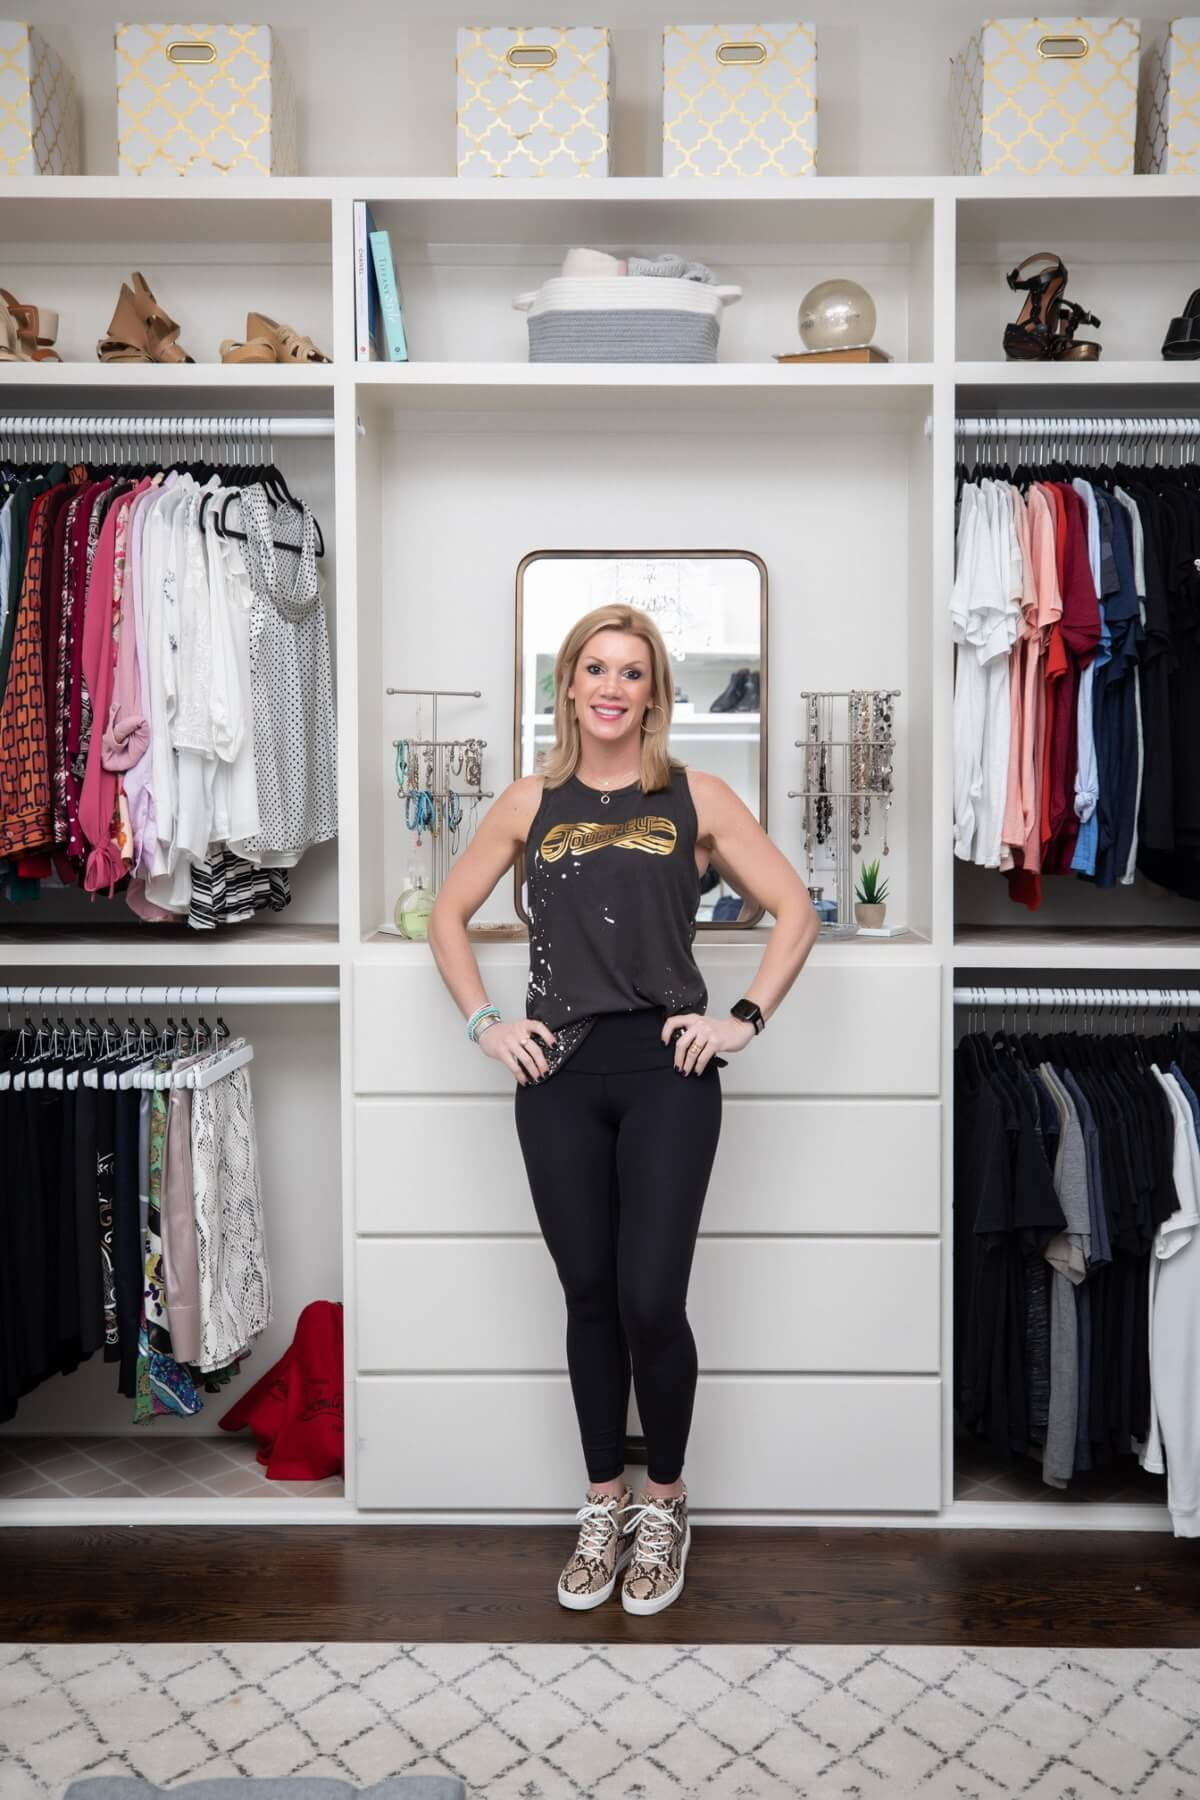 WIPT Designs owner, Beth Hayden, in a closet where she has maximized organization.